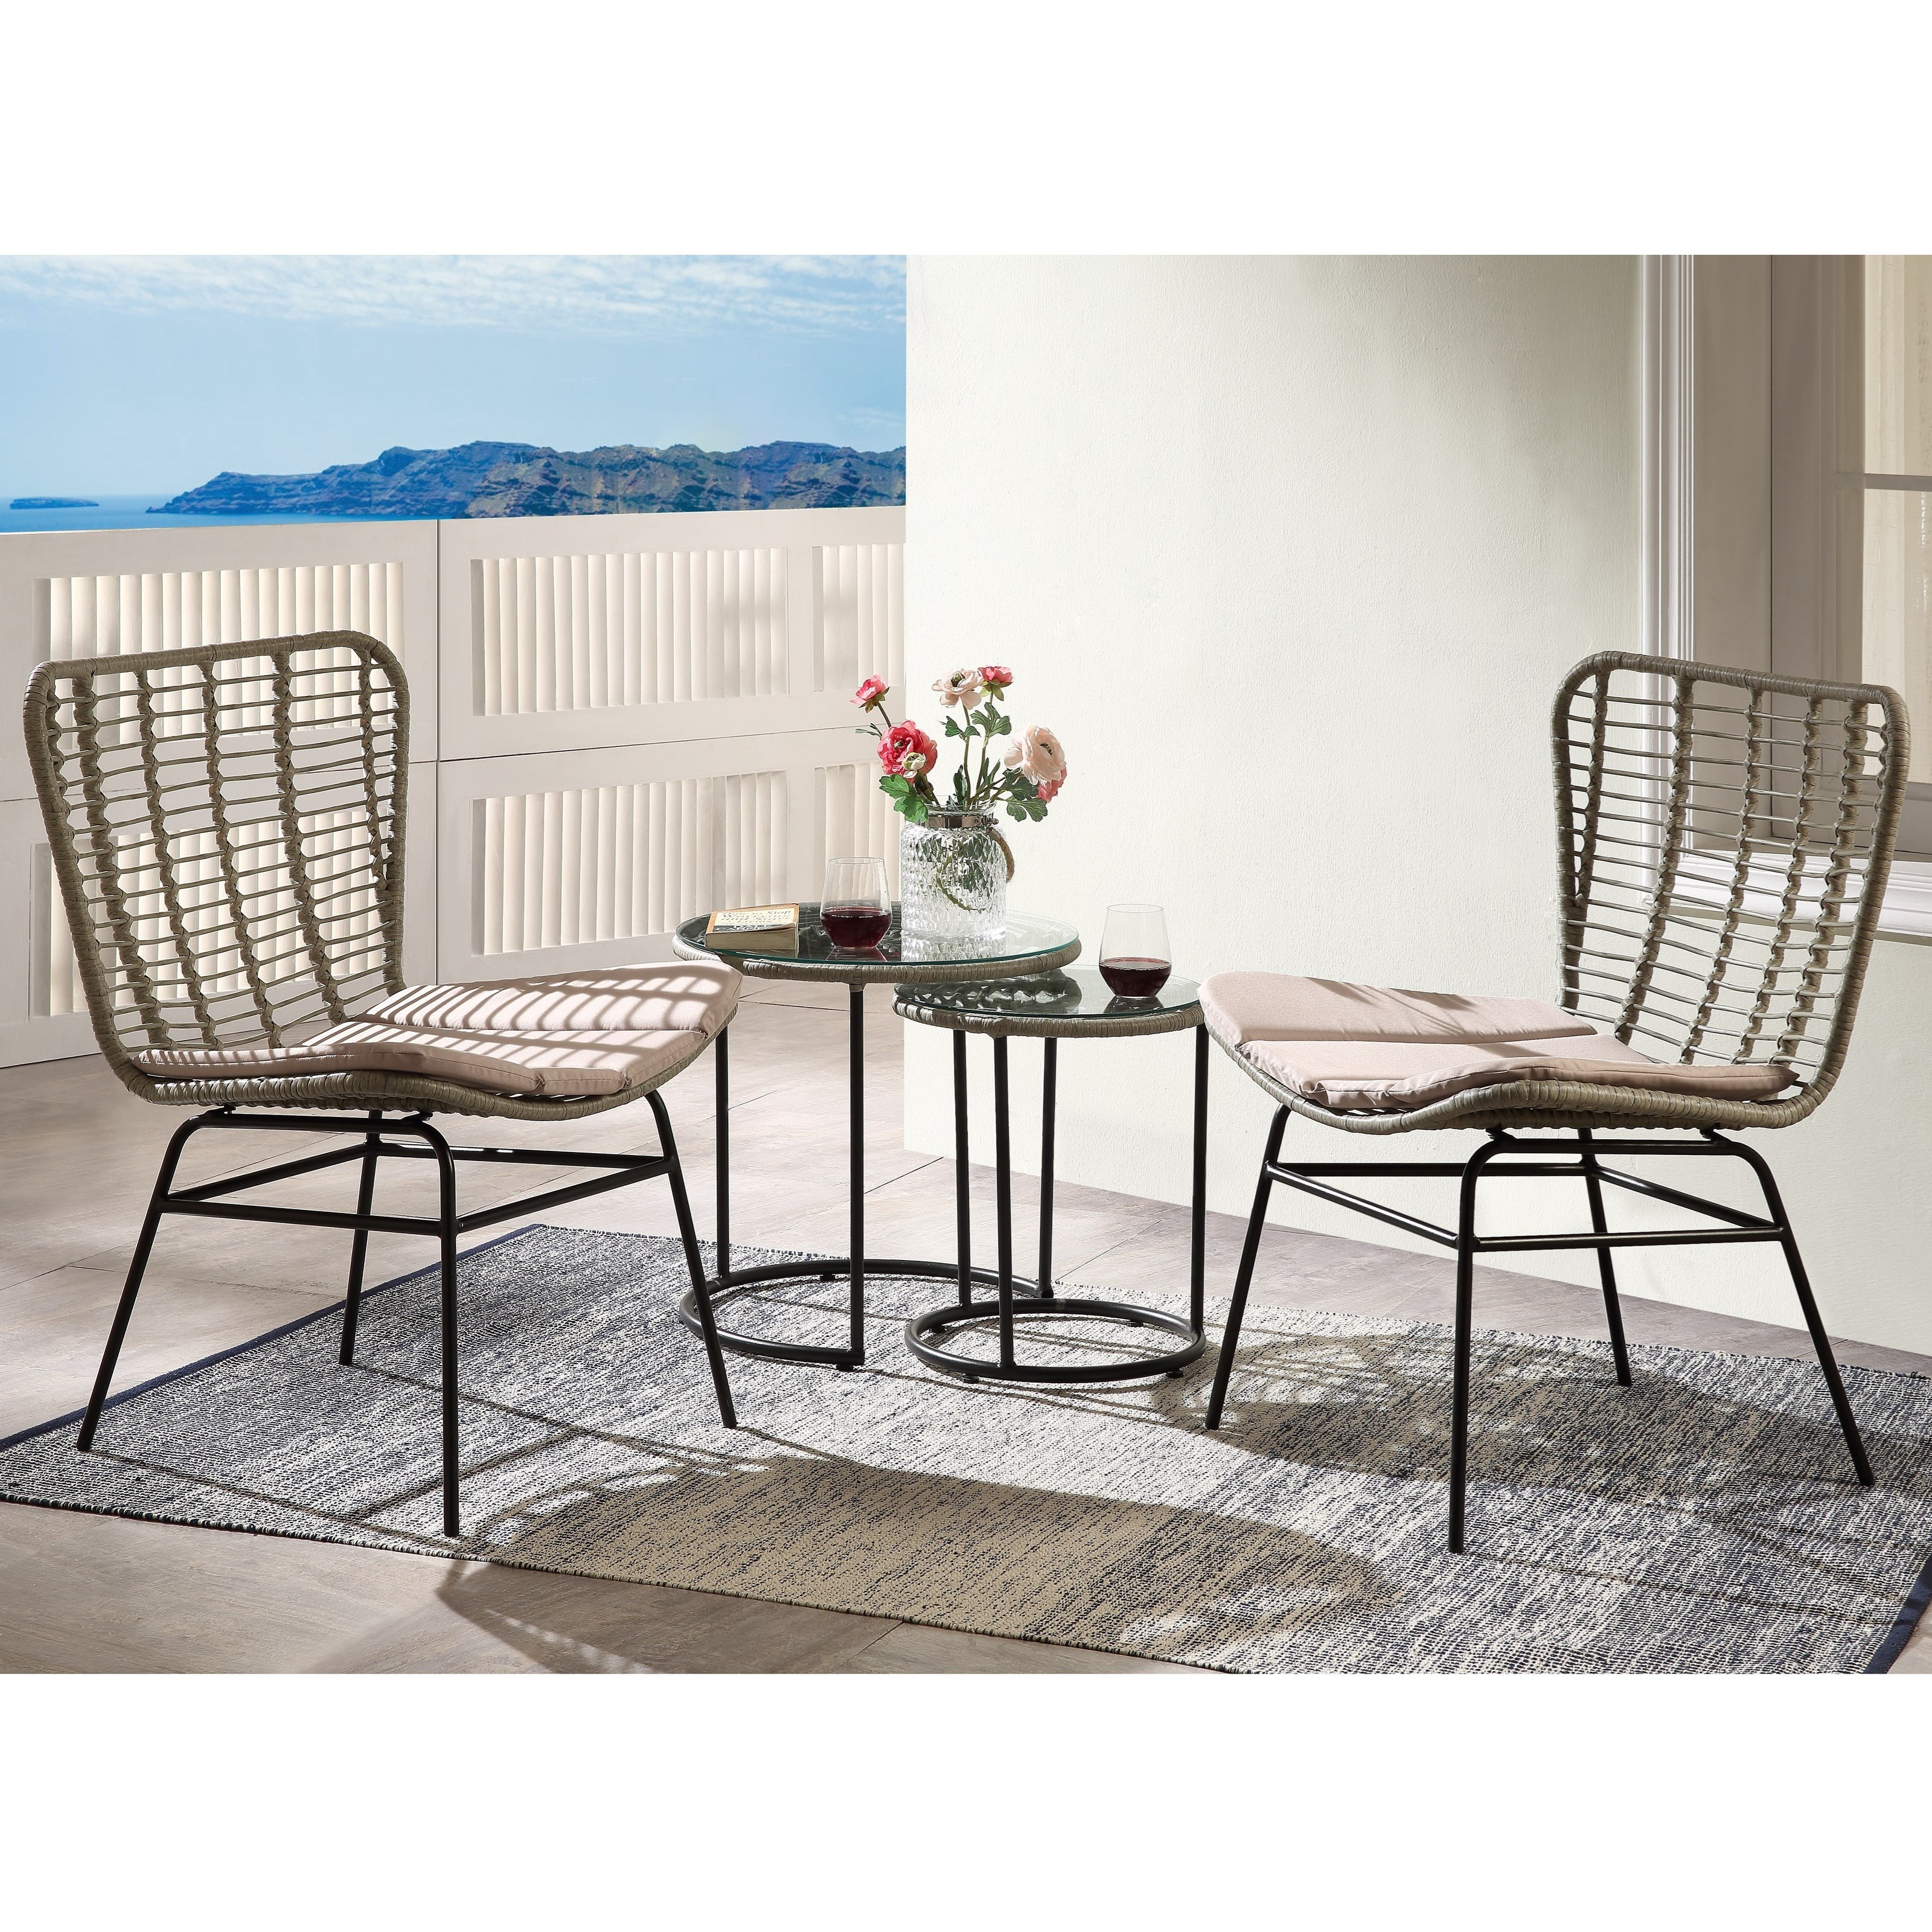 Kanga 4Pc Patio Set by Acme Furniture at A1 Furniture & Mattress